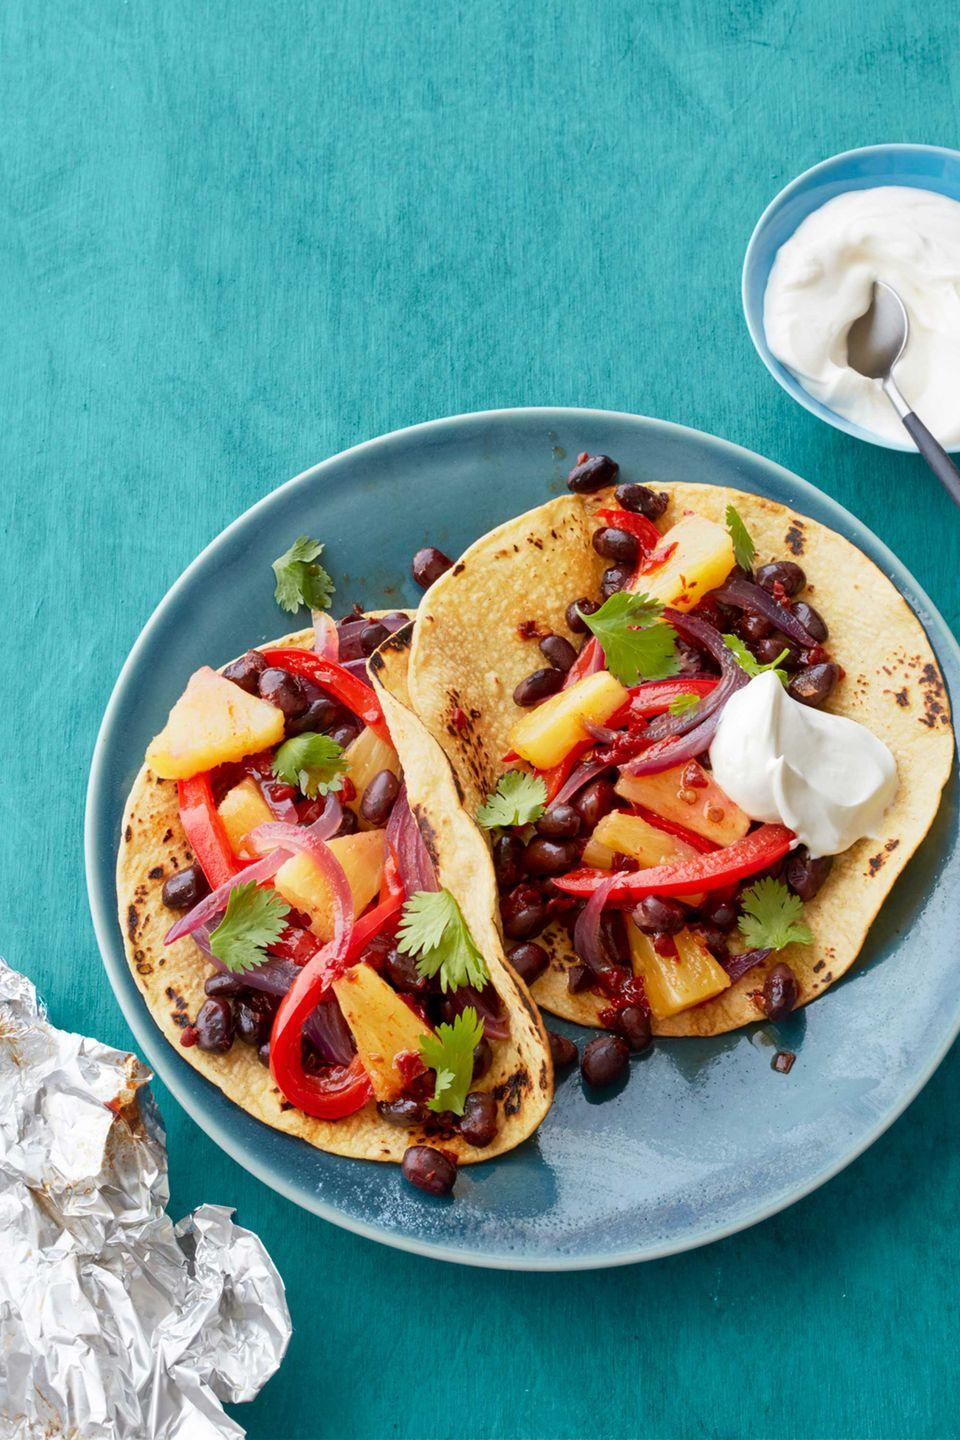 "<p>Mexican goes meatless with these sweet and smoky vegetarian fajitas.</p><p><a href=""https://www.womansday.com/food-recipes/food-drinks/recipes/a55764/pineapple-and-black-bean-fajitas-recipe/"" rel=""nofollow noopener"" target=""_blank"" data-ylk=""slk:Get the Pineapple and Black Bean Fajitas recipe."" class=""link rapid-noclick-resp""><em><strong>Get the Pineapple and Black Bean Fajitas recipe.</strong></em></a></p>"